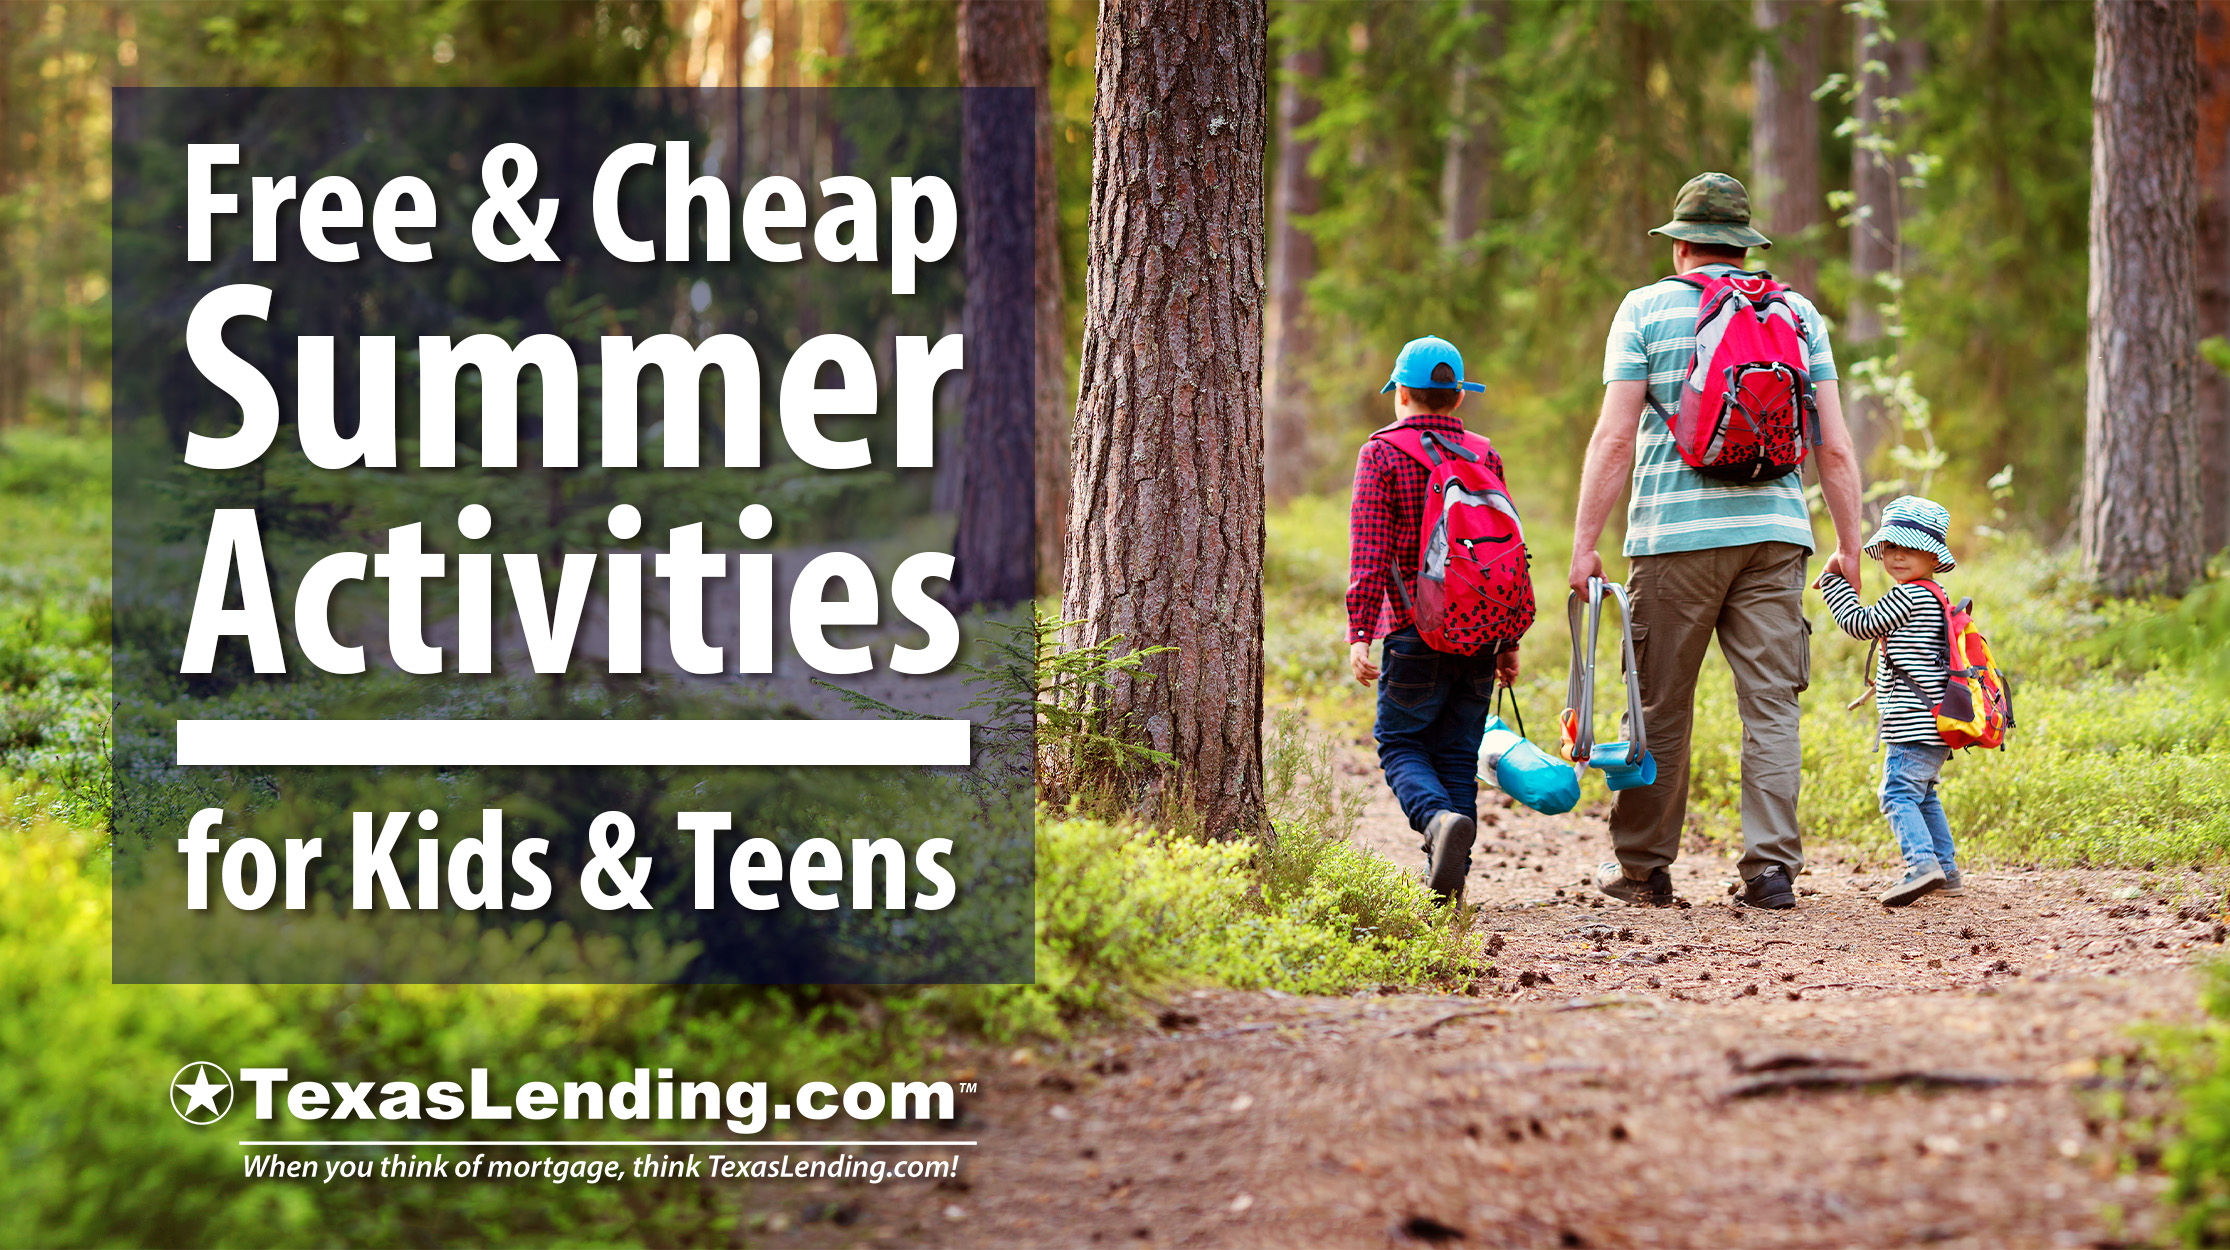 Summer Activities for Kids and Teens